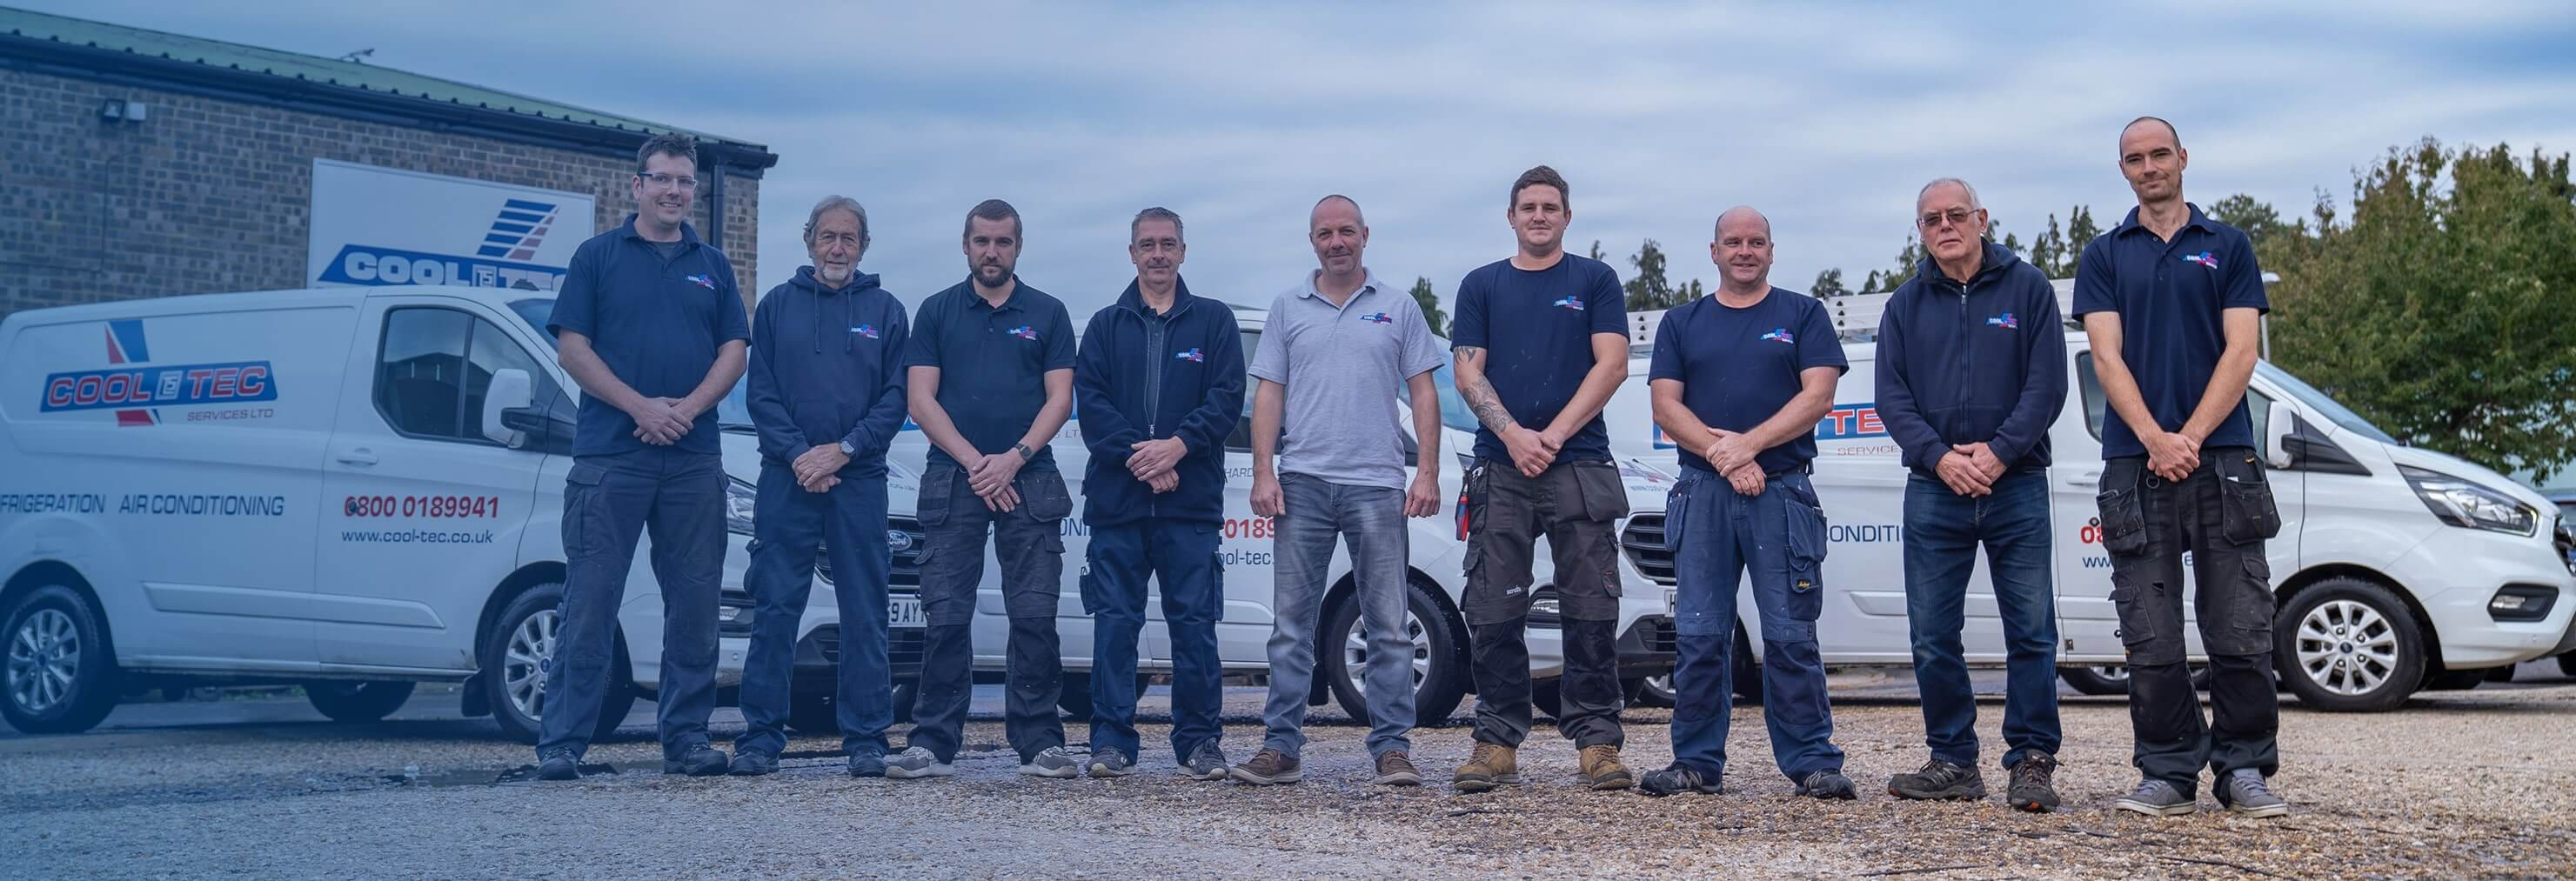 Air conditioning specialists Dorset